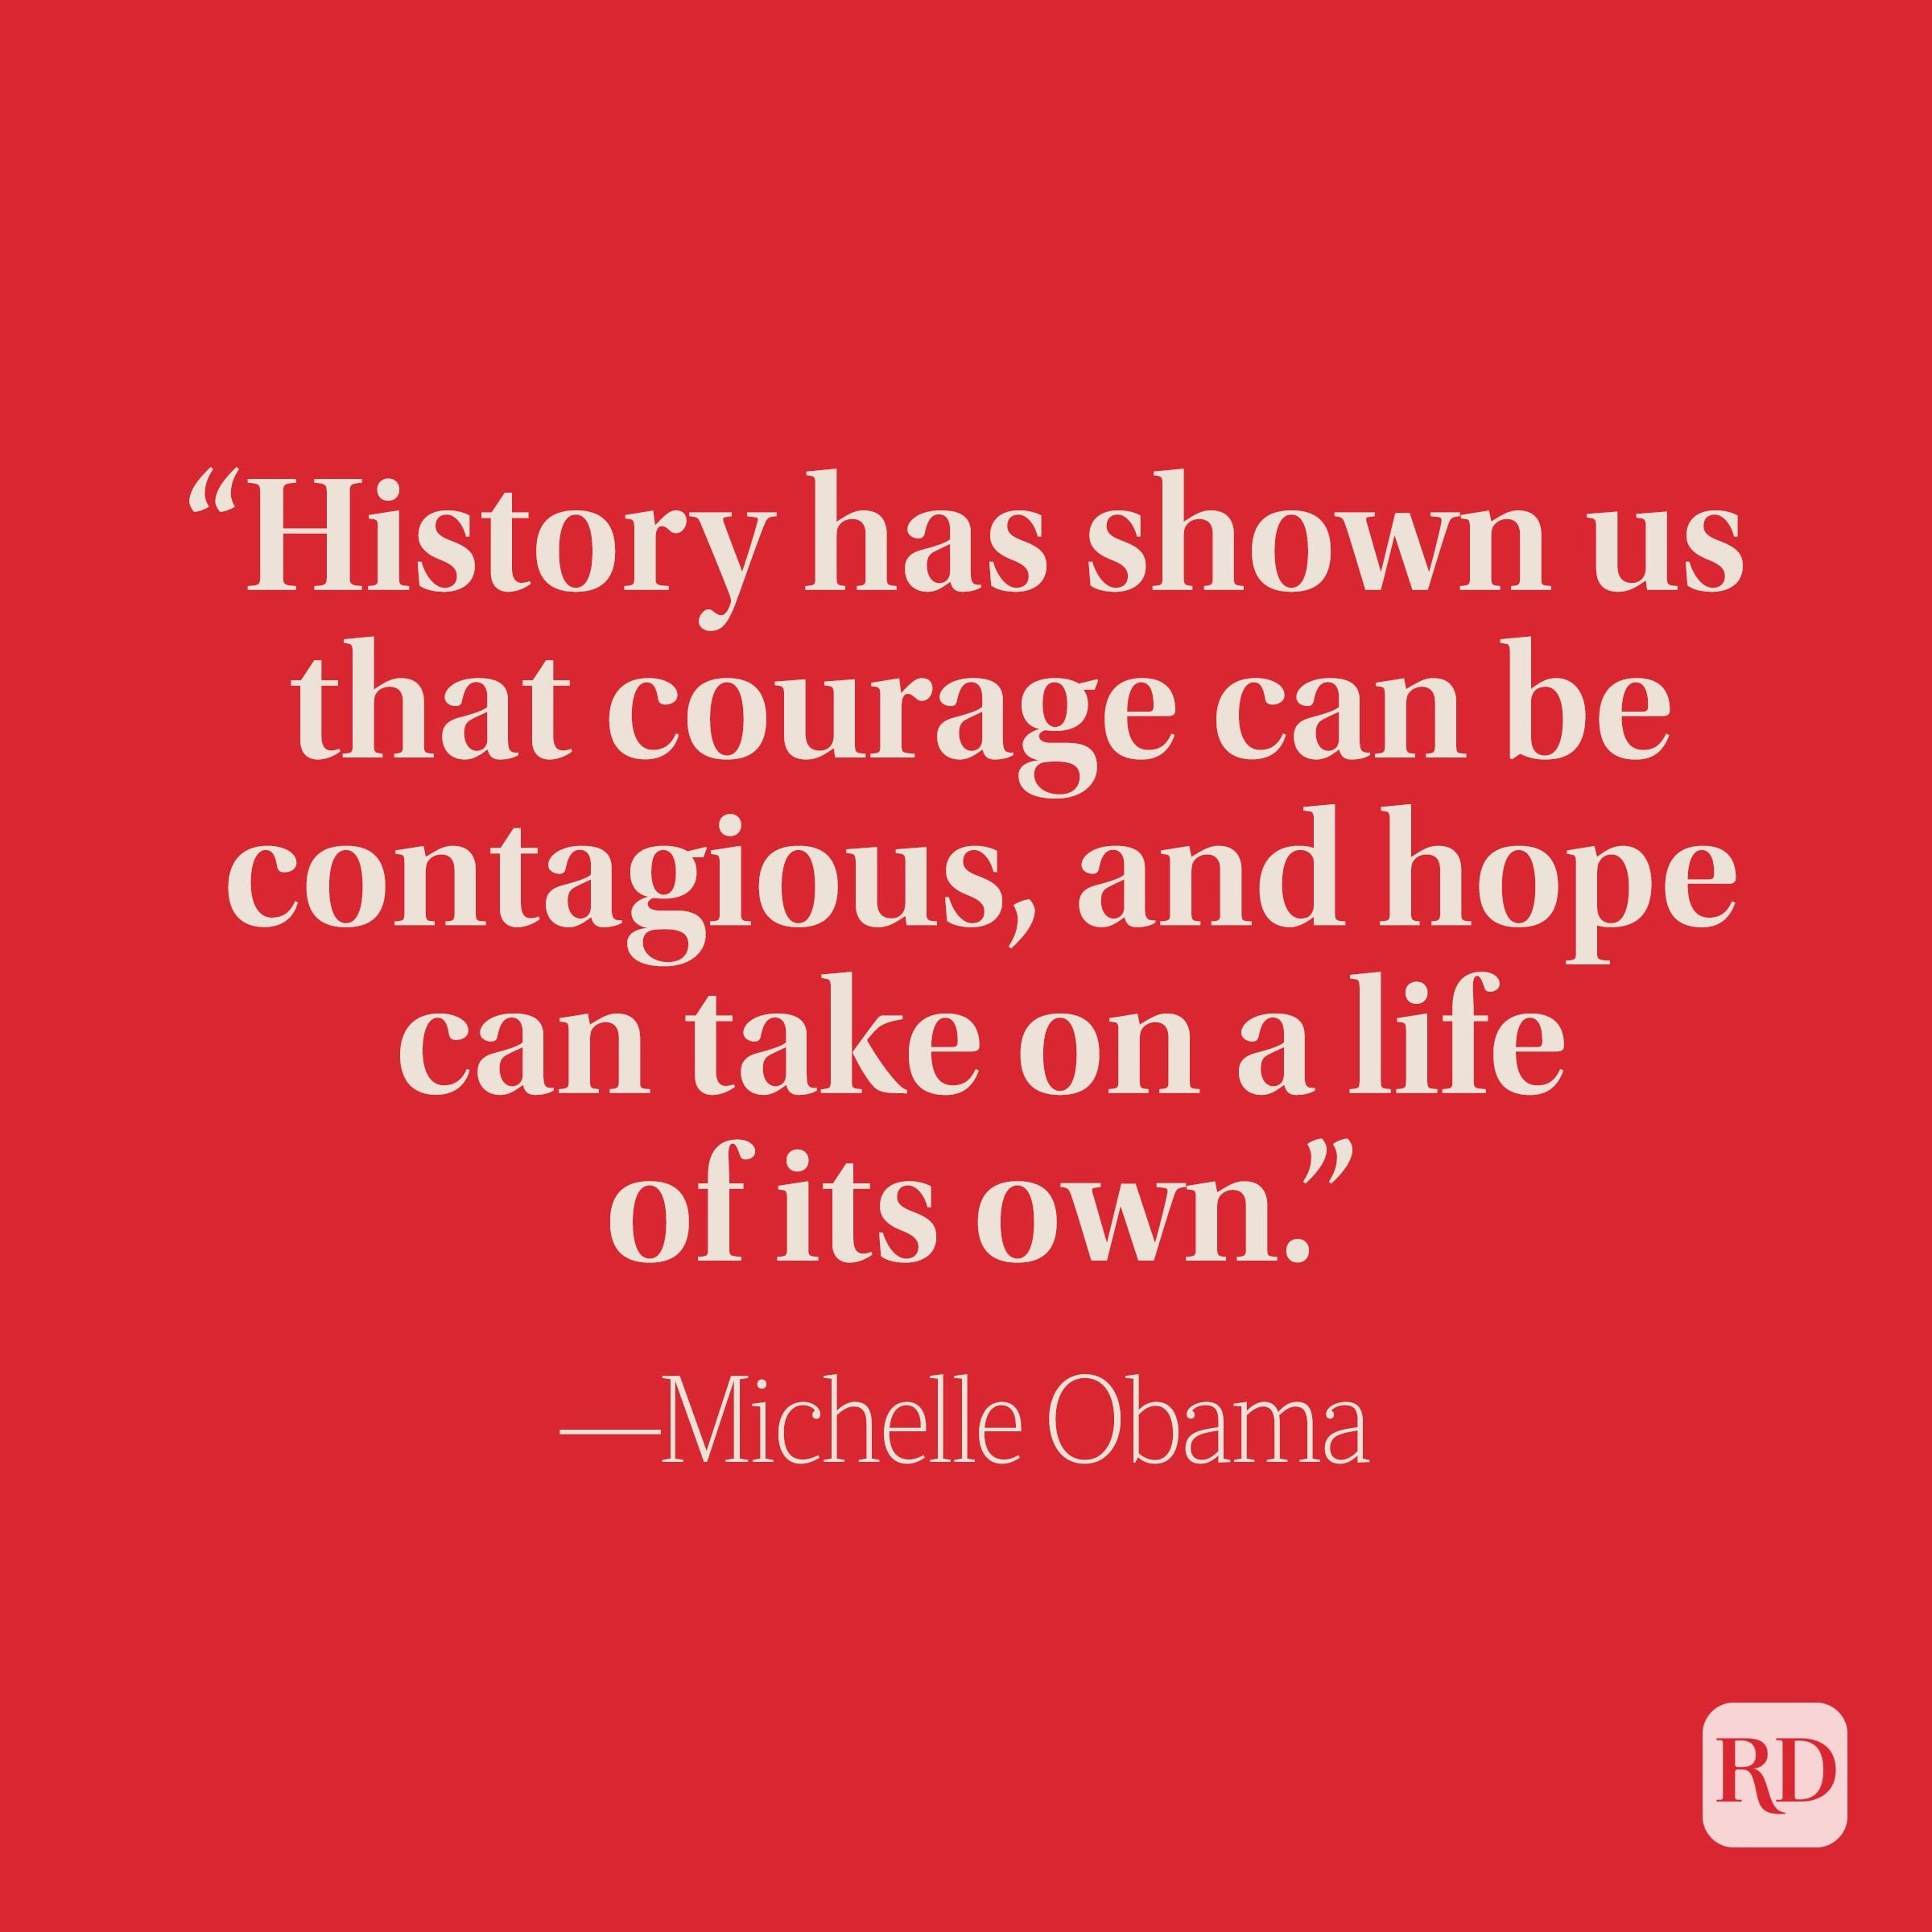 """""""History has shown us that courage can be contagious, and hope can take on a life of its own."""" –Michelle Obama"""